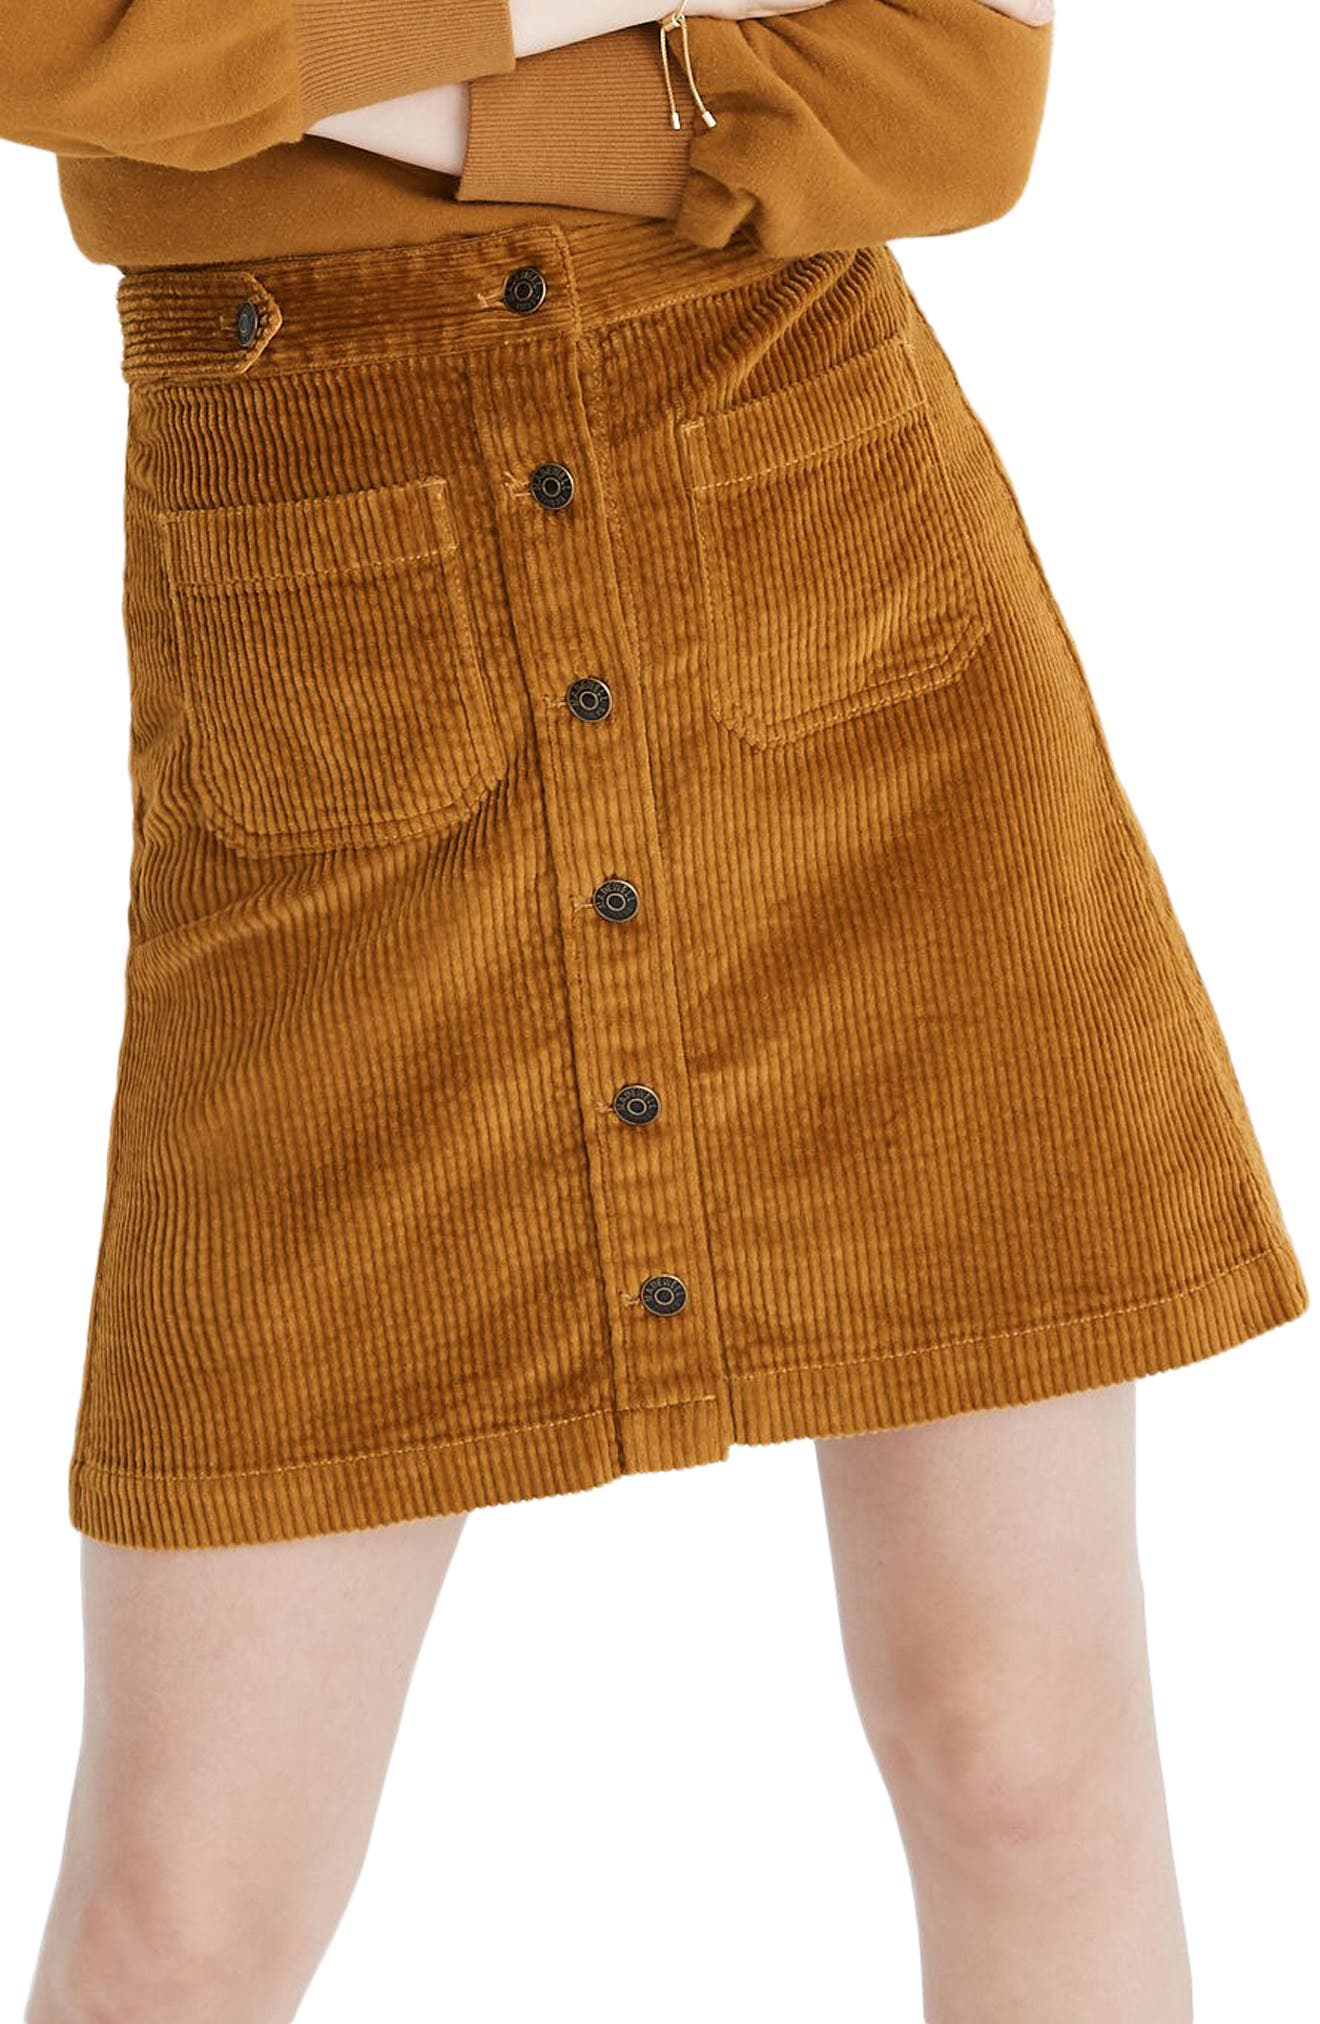 60s Skirts | 70s Hippie Skirts, Jumper Dresses Womens Madewell Button Front A-Line Corduroy Skirt $63.60 AT vintagedancer.com